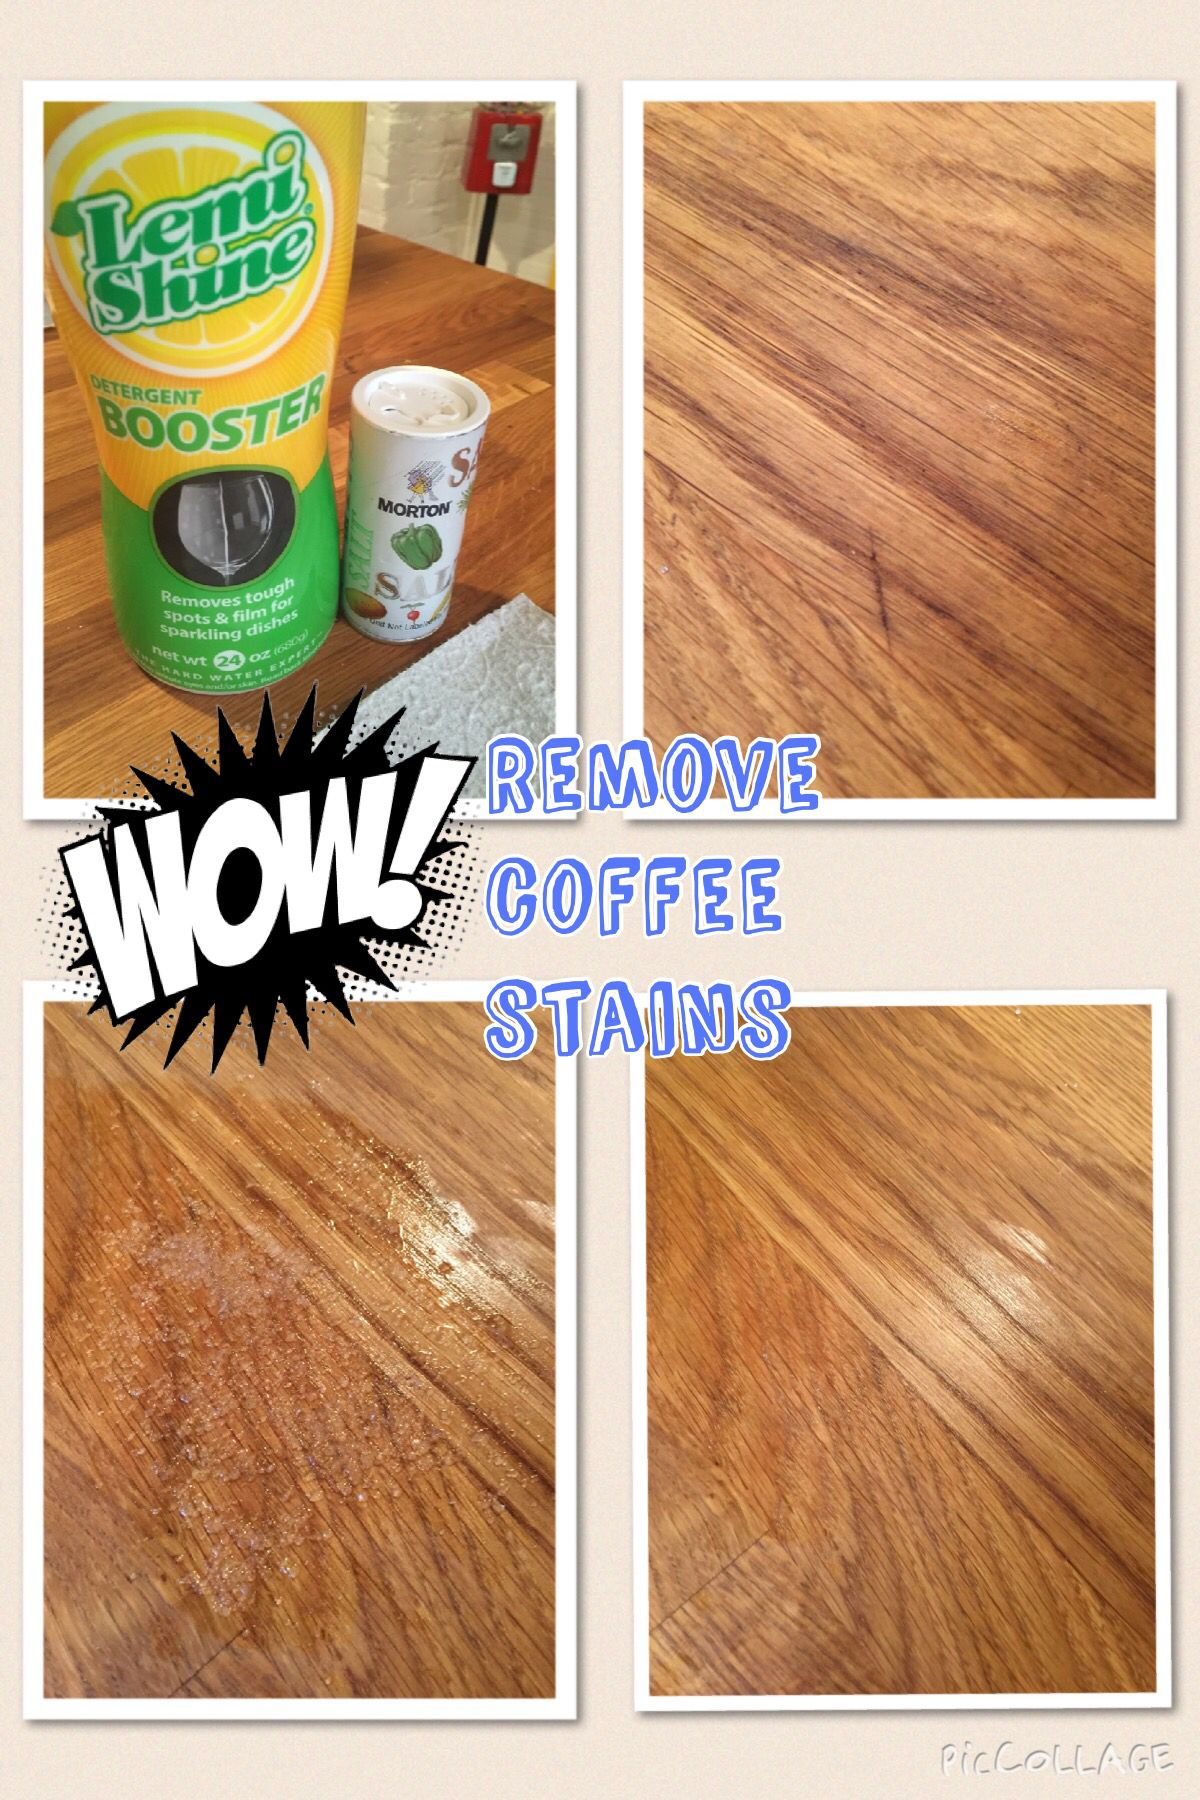 Remove Coffee Stains From Butcher Block Counter Top Make A Paste With Water Salt And Lemi Shine Let Set 10 Mins Stain Disears